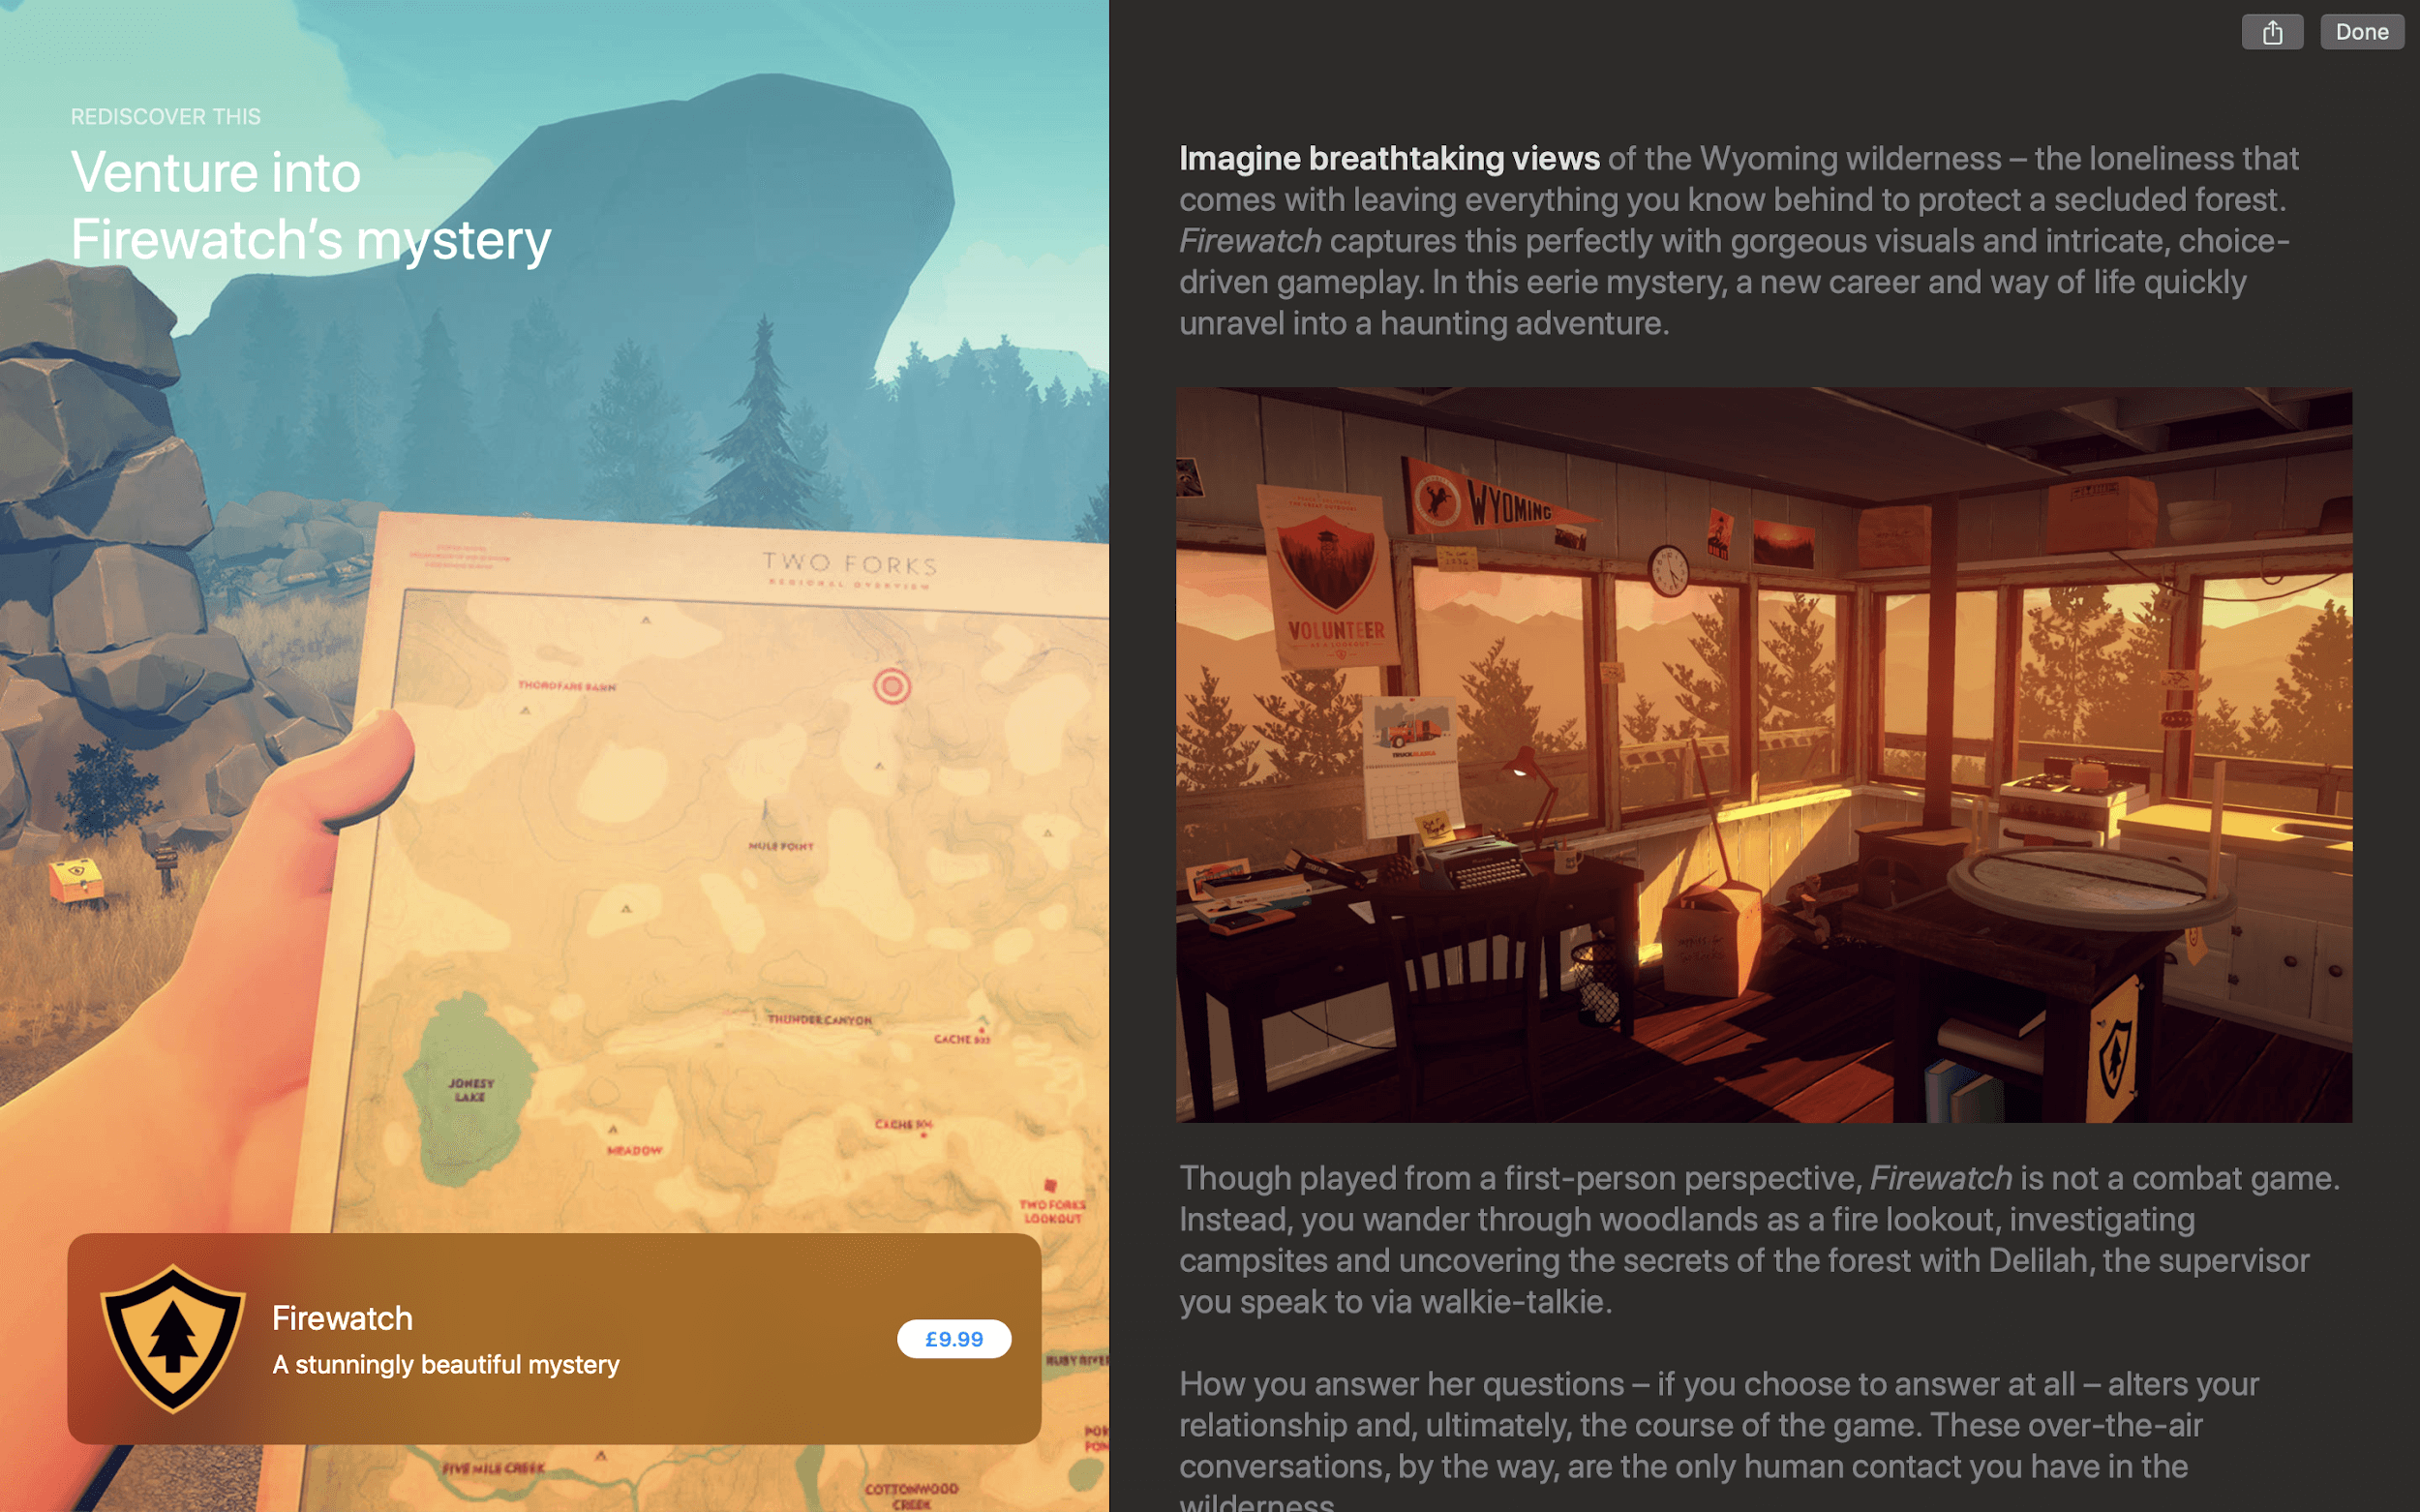 Venture into Firewatch's mystery